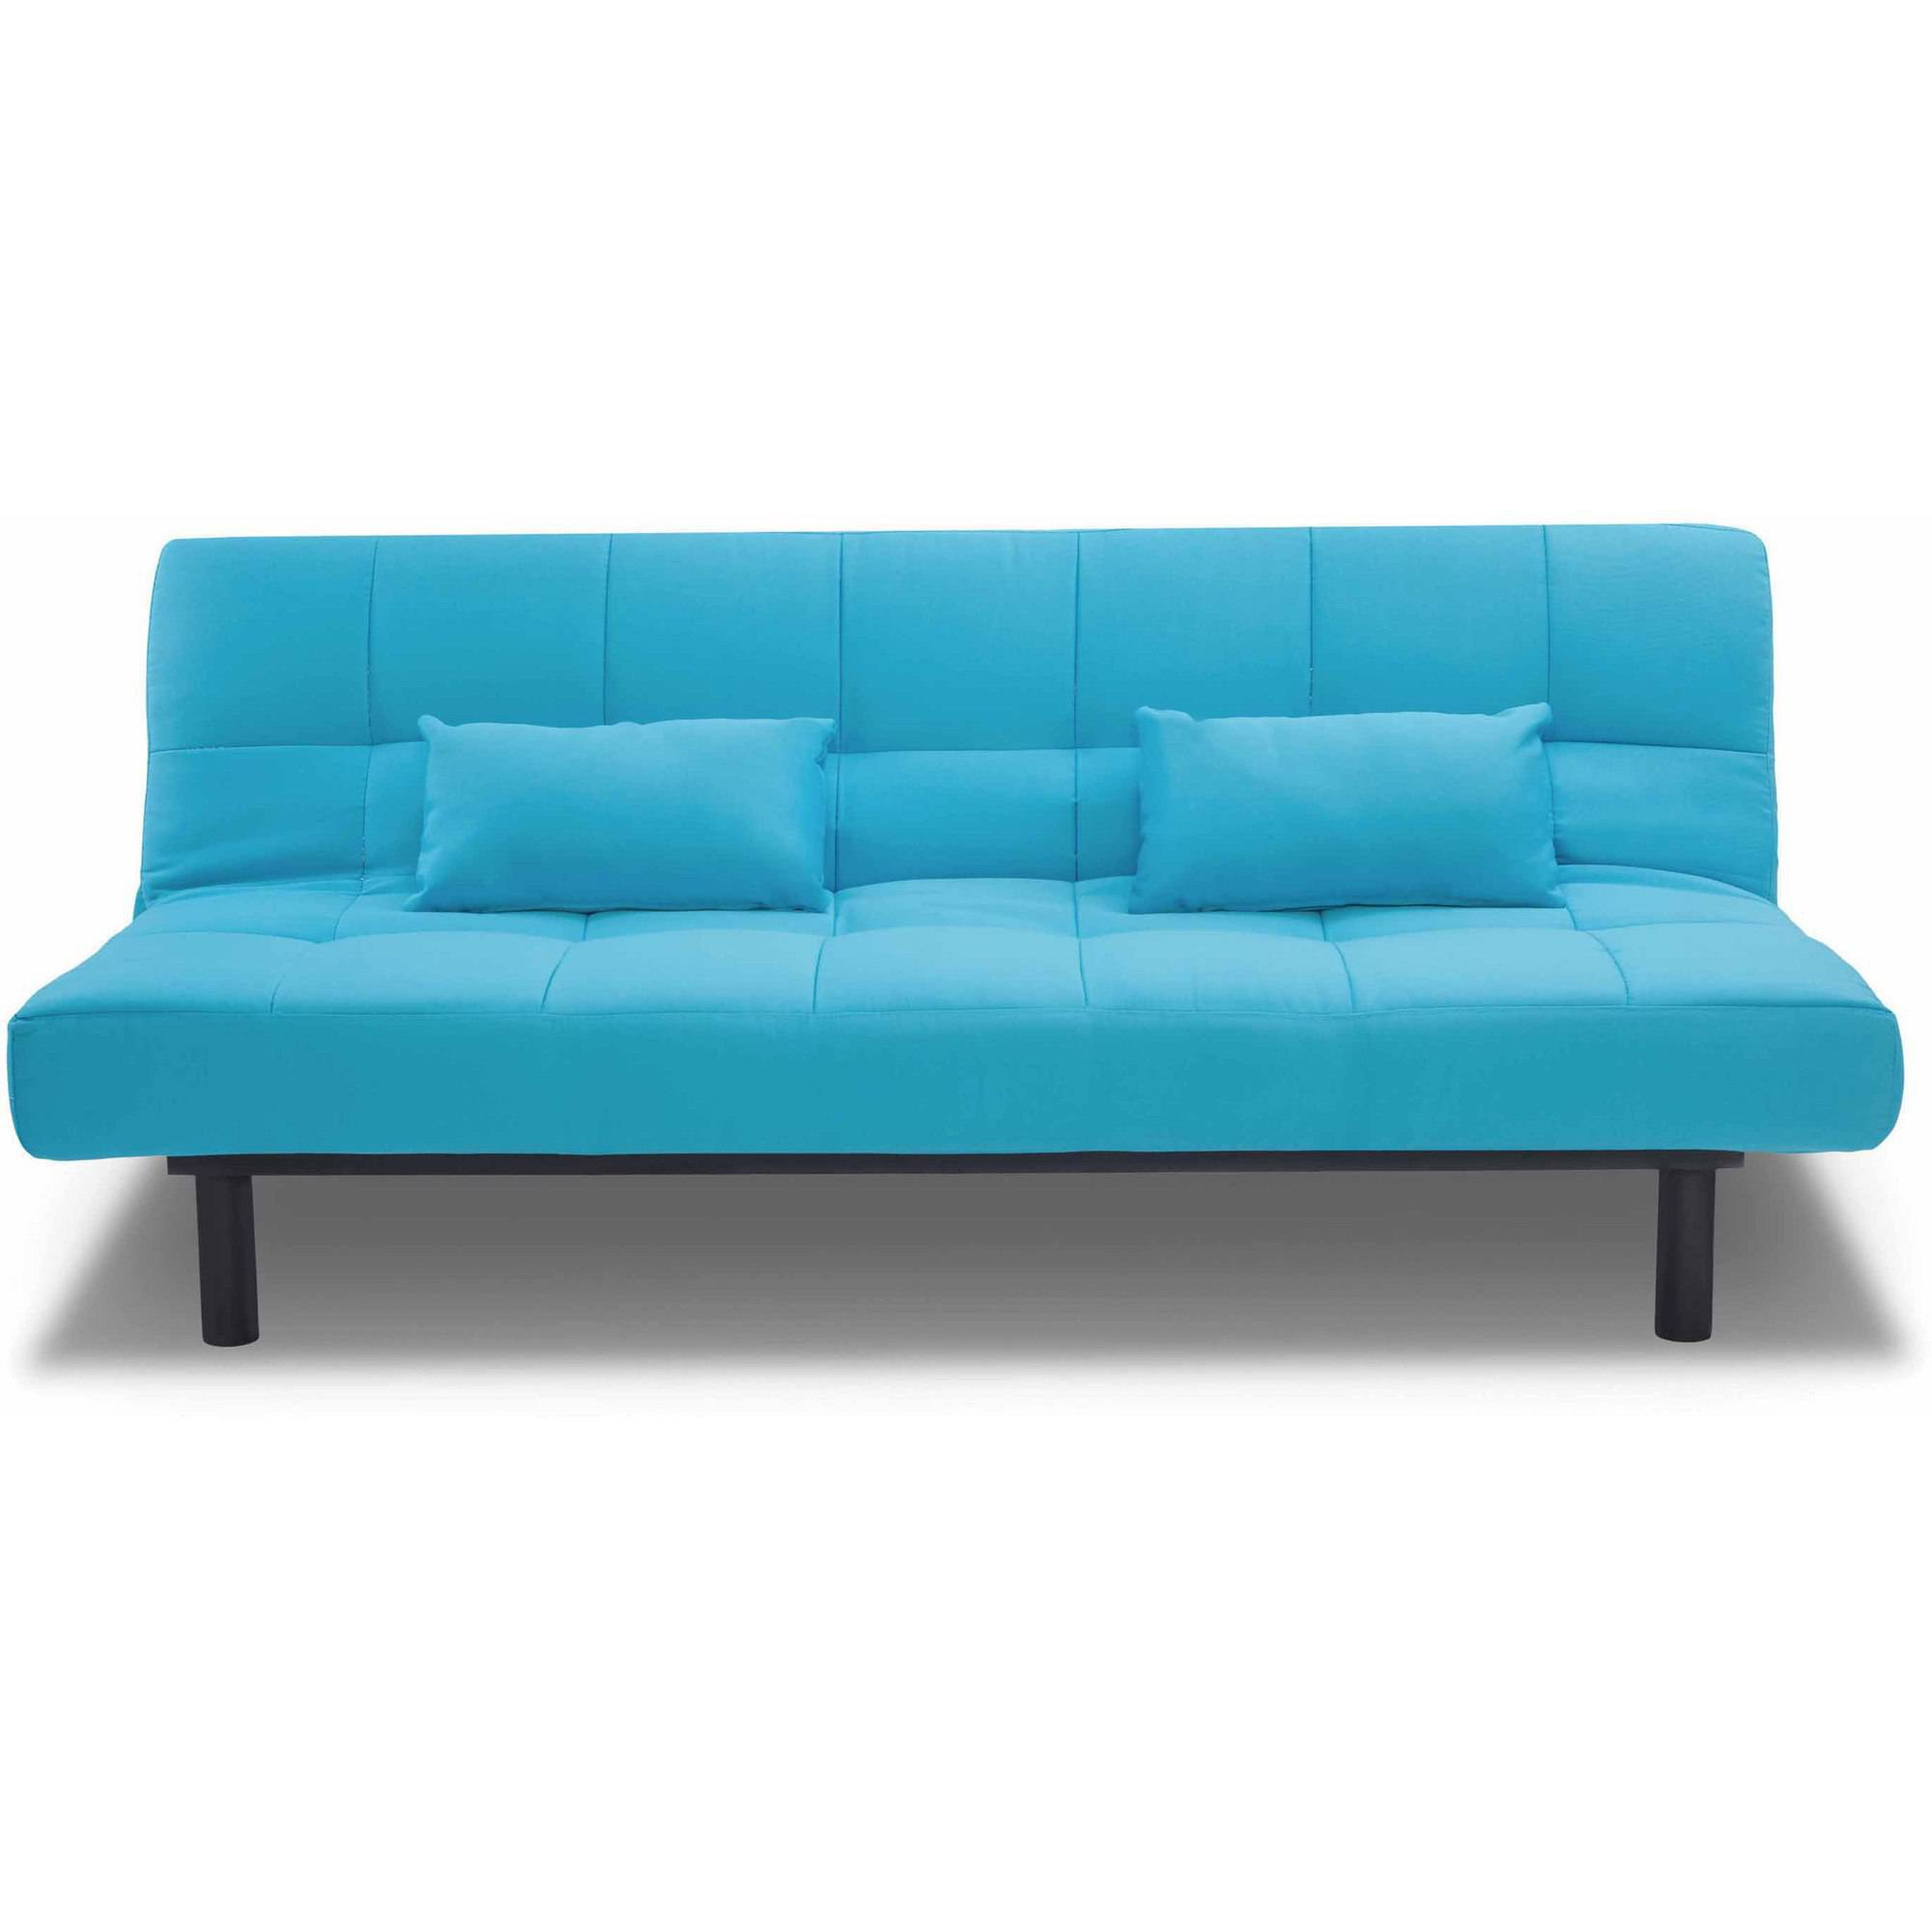 sofa lounger outdoor faux leather material futon roselawnlutheran